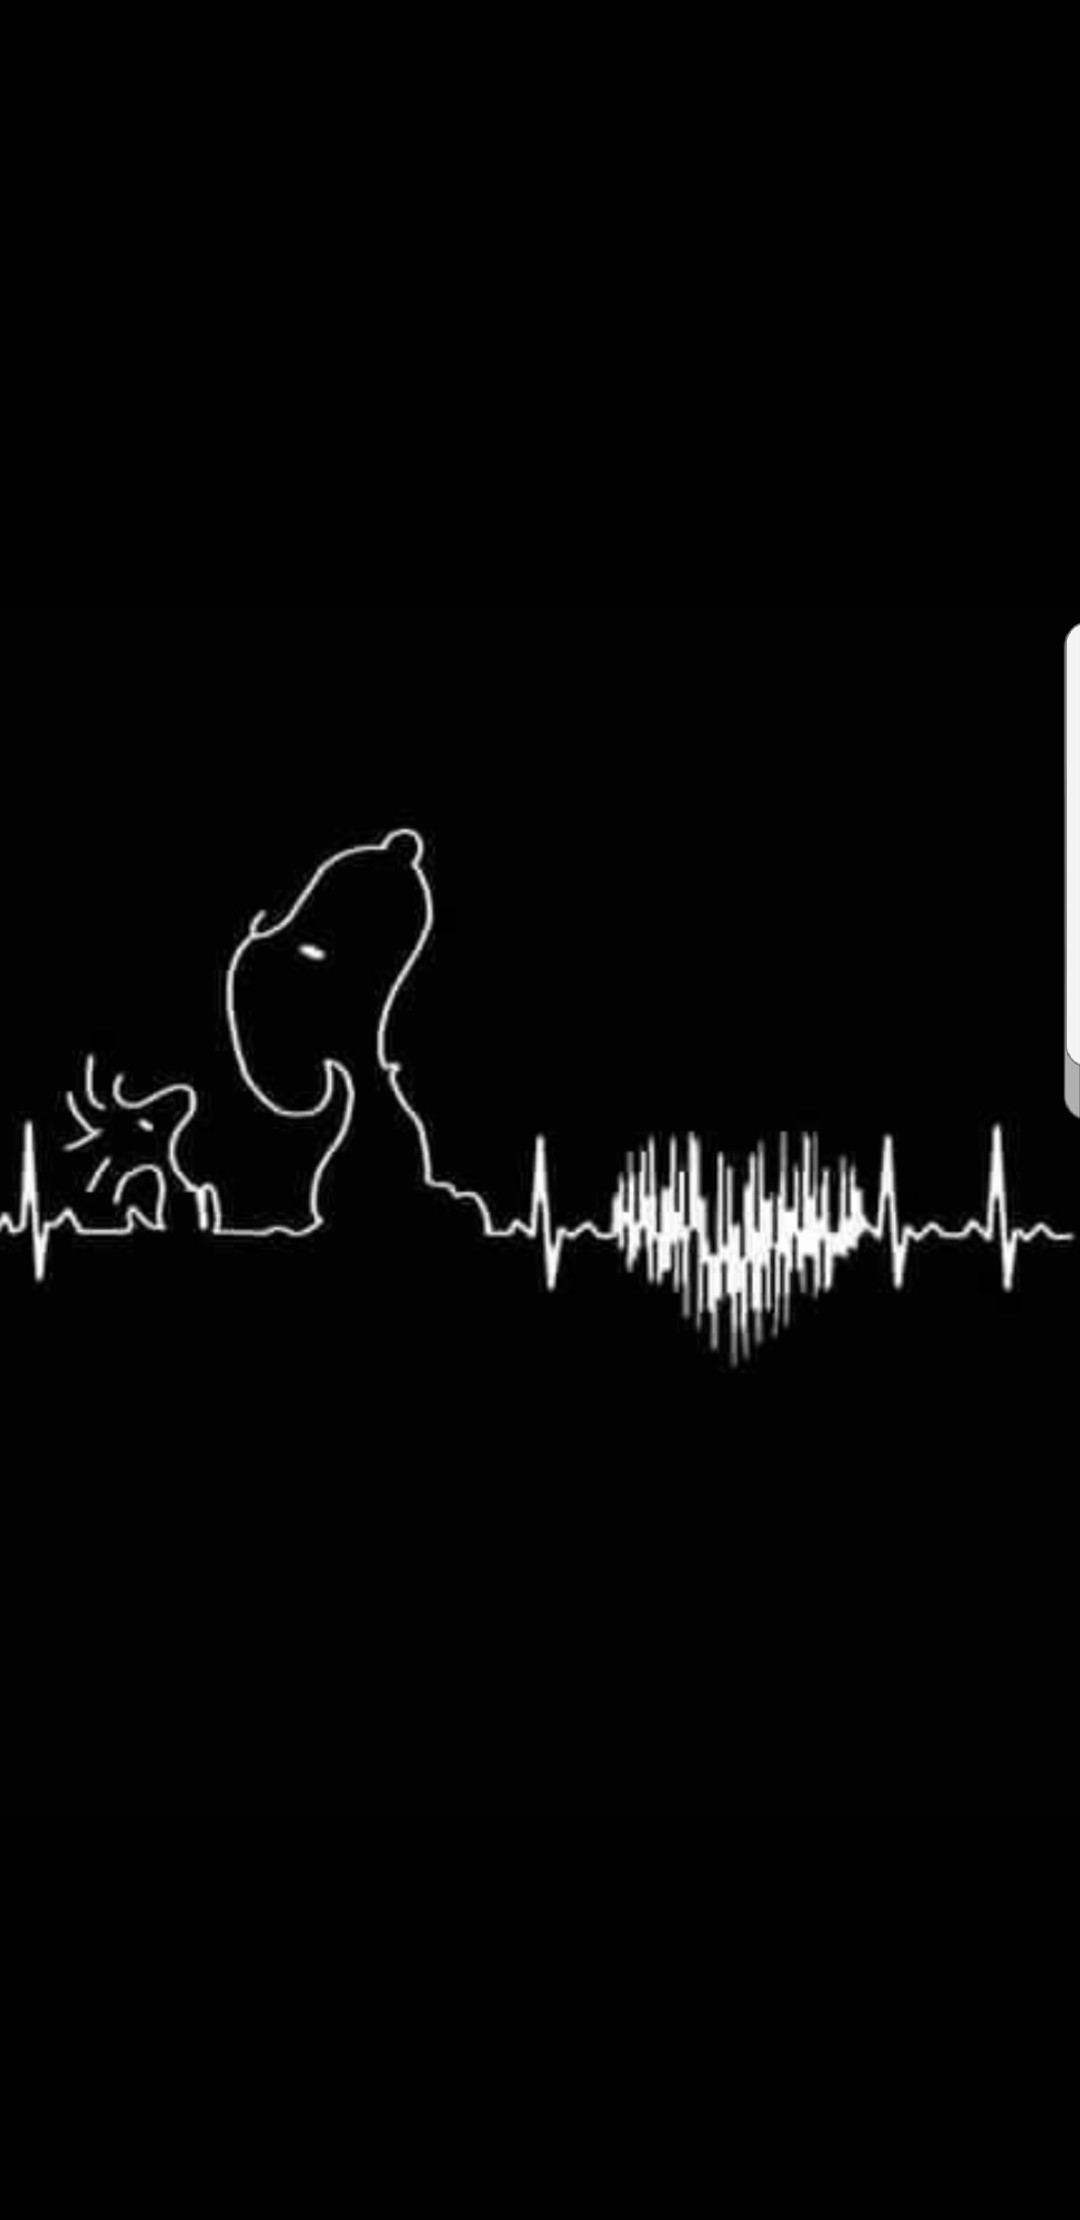 Res: 1080x2220, Snoopy and Woodstock heartbeat